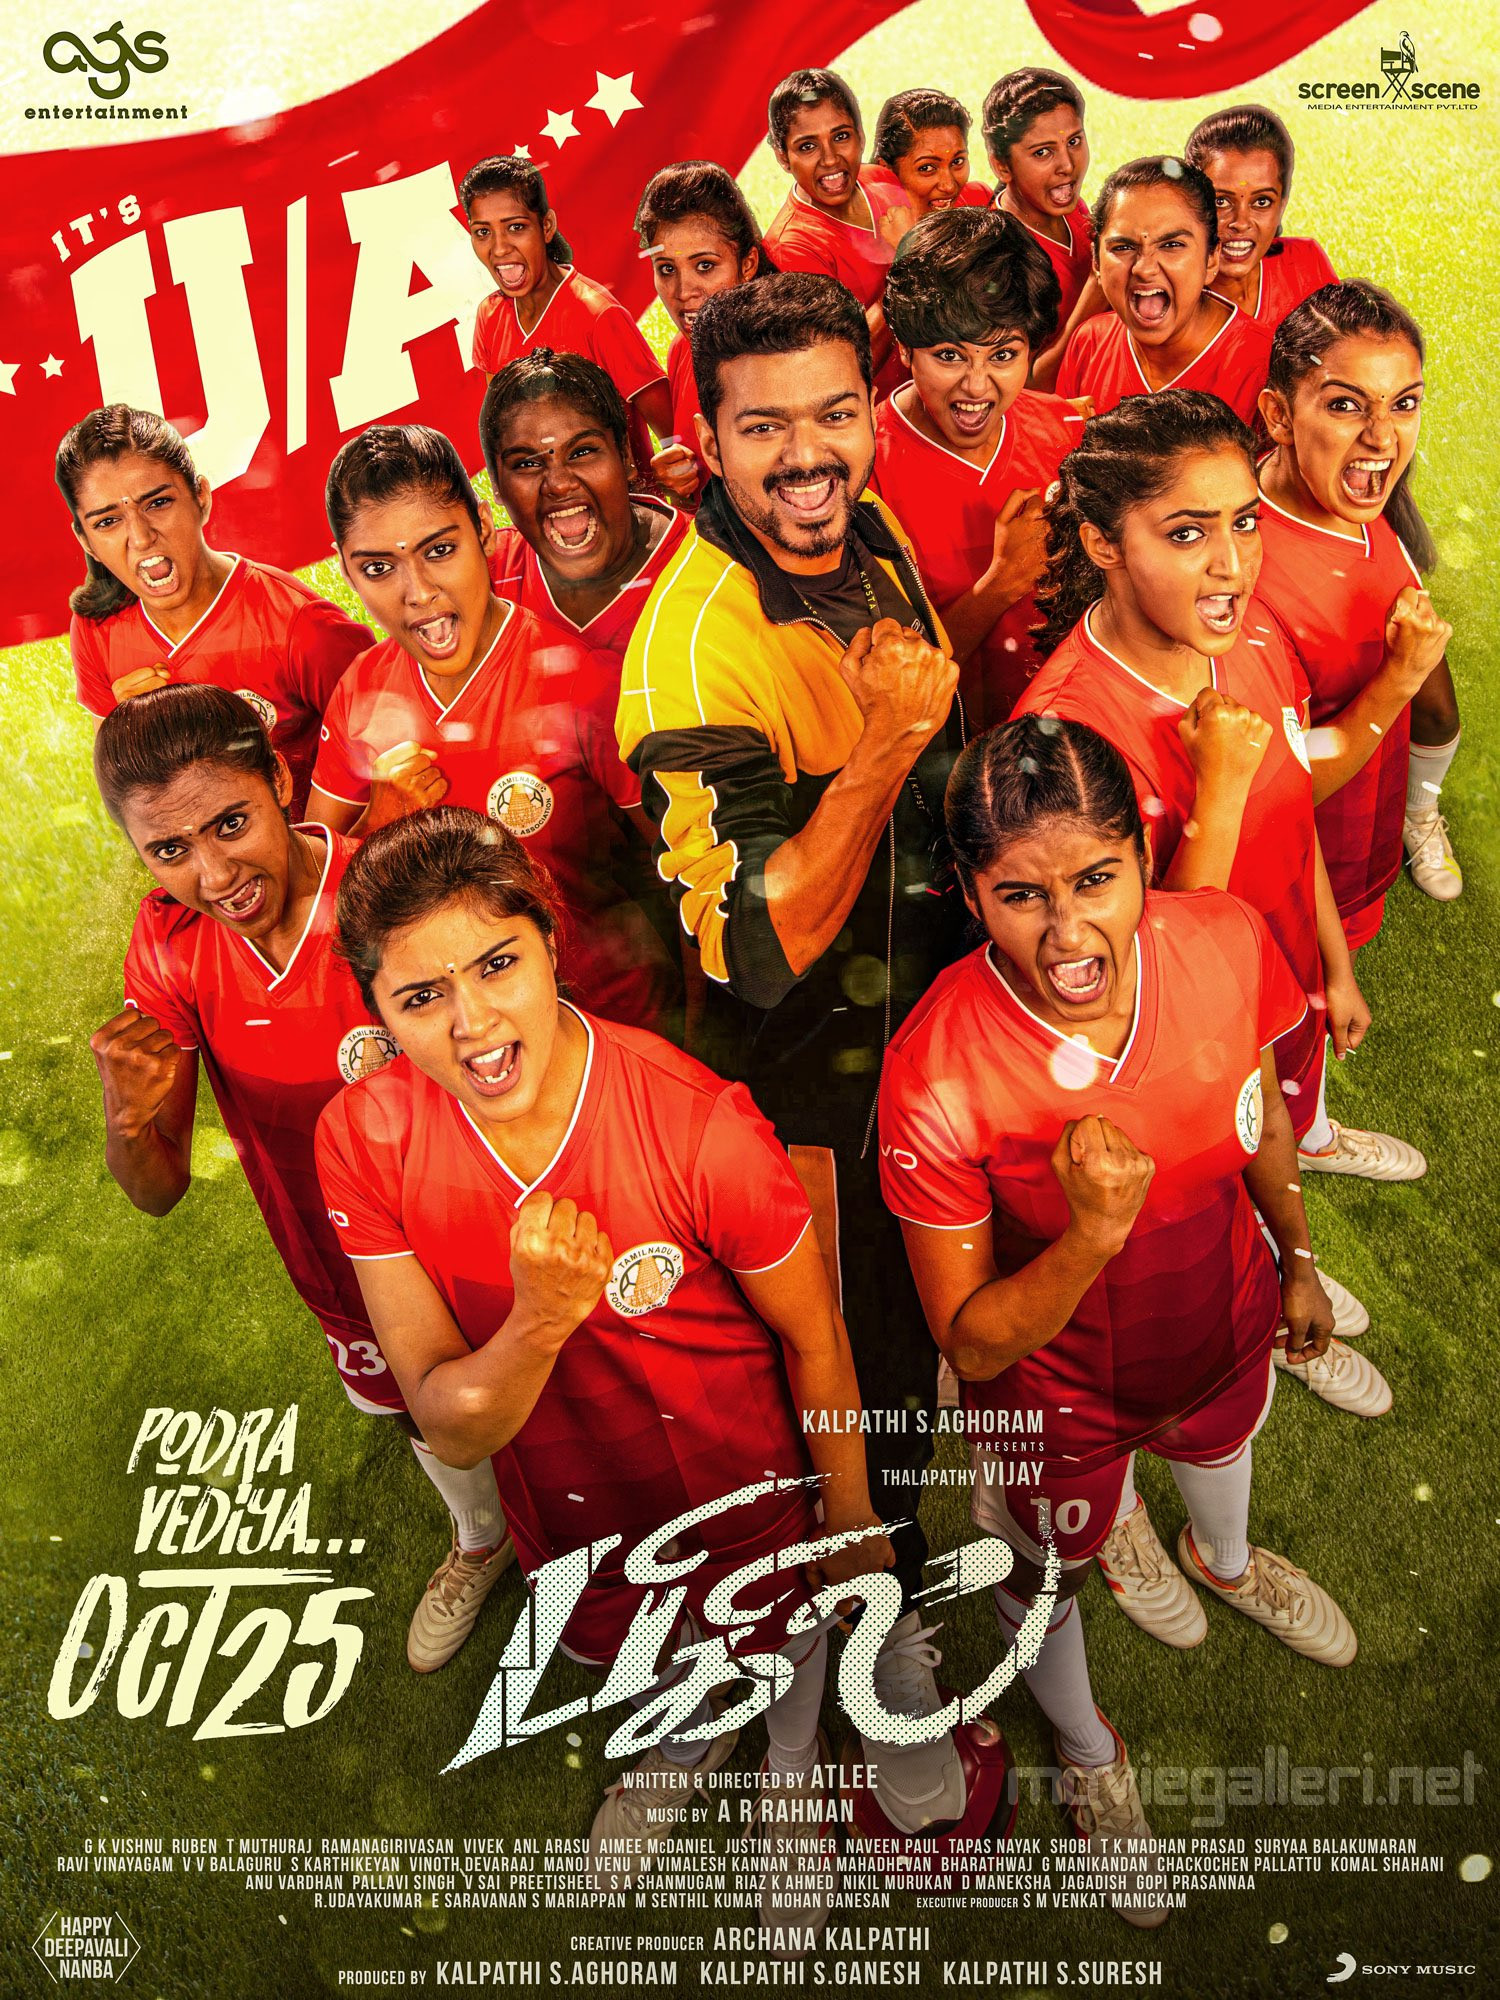 Vijay Bigil Movie Release Date on Oct 25 Poster HD